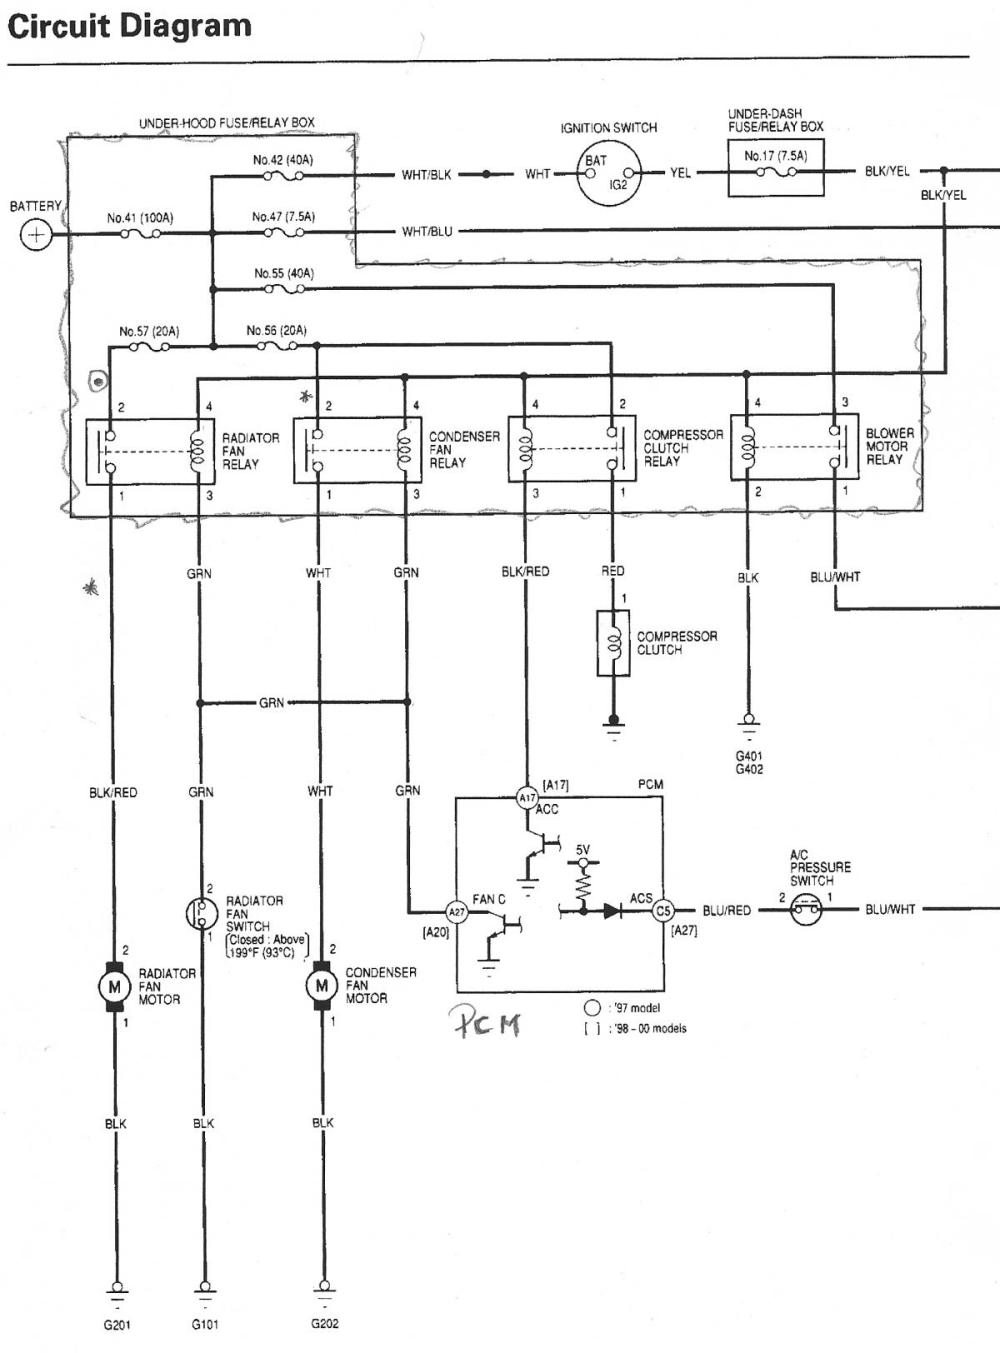 medium resolution of honda civic cooling system diagram moreover 94 honda accord radio wiring diagram honda civic cooling system diagram 1996 honda accord